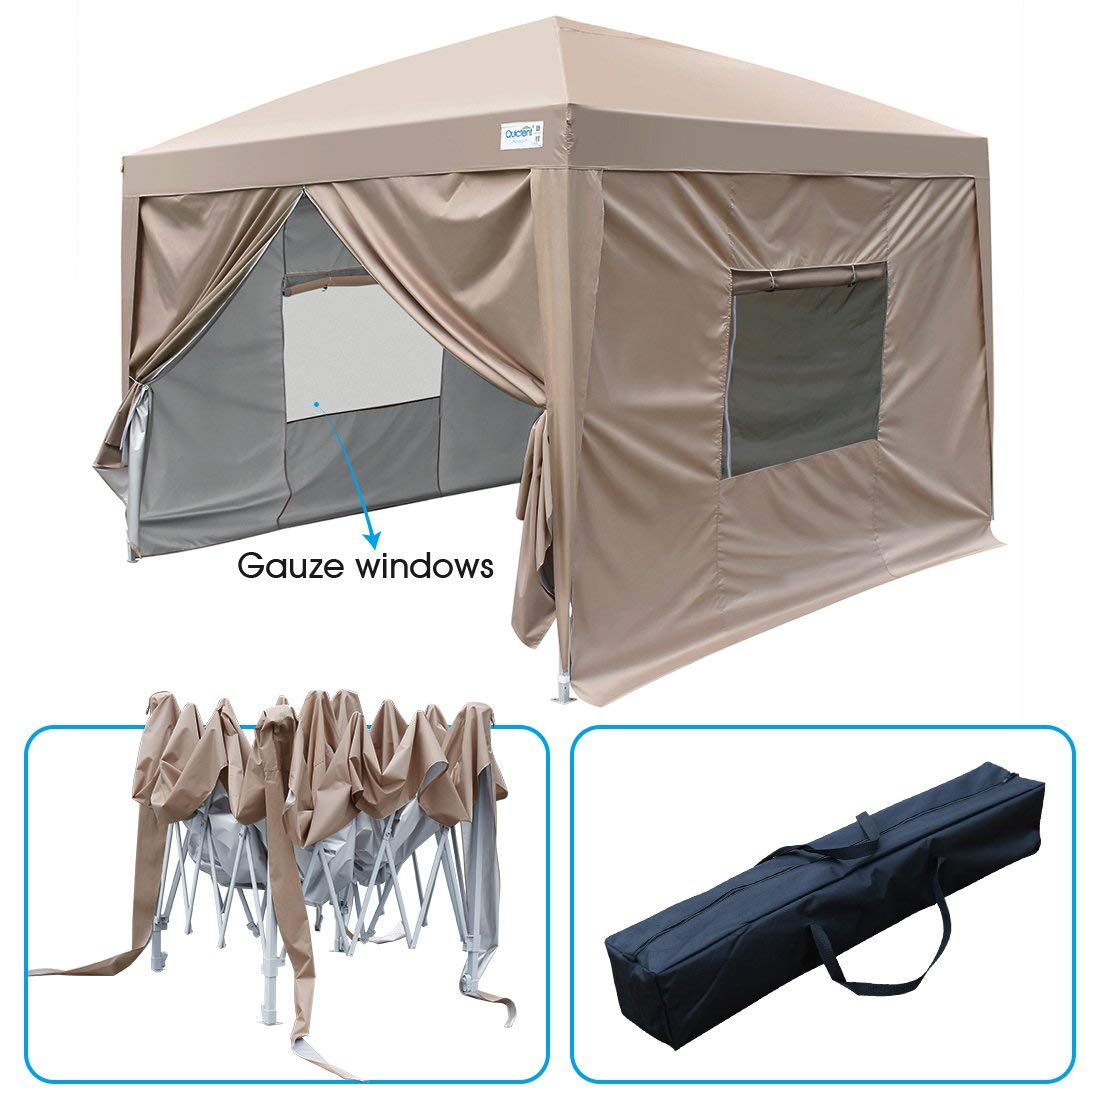 Upgraded Privacy 10x10 Ez Pop Up Canopy Tent Instant